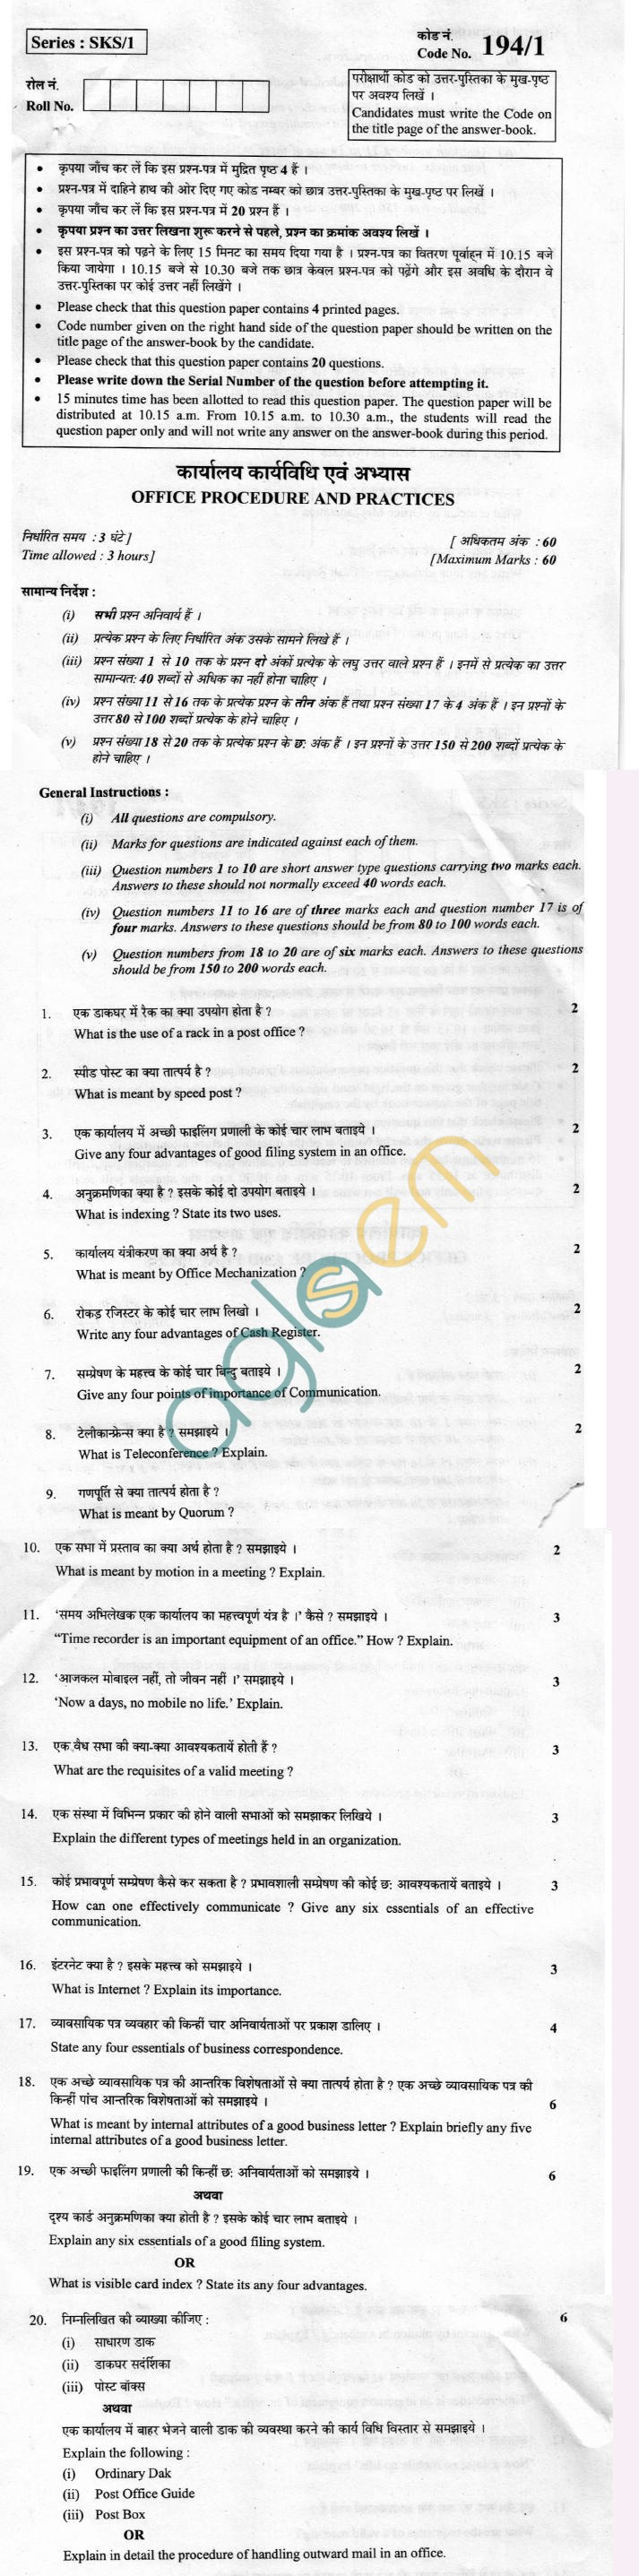 CBSE Board Exam 2013 Class XII Question Paper -Office Procedure and Practices